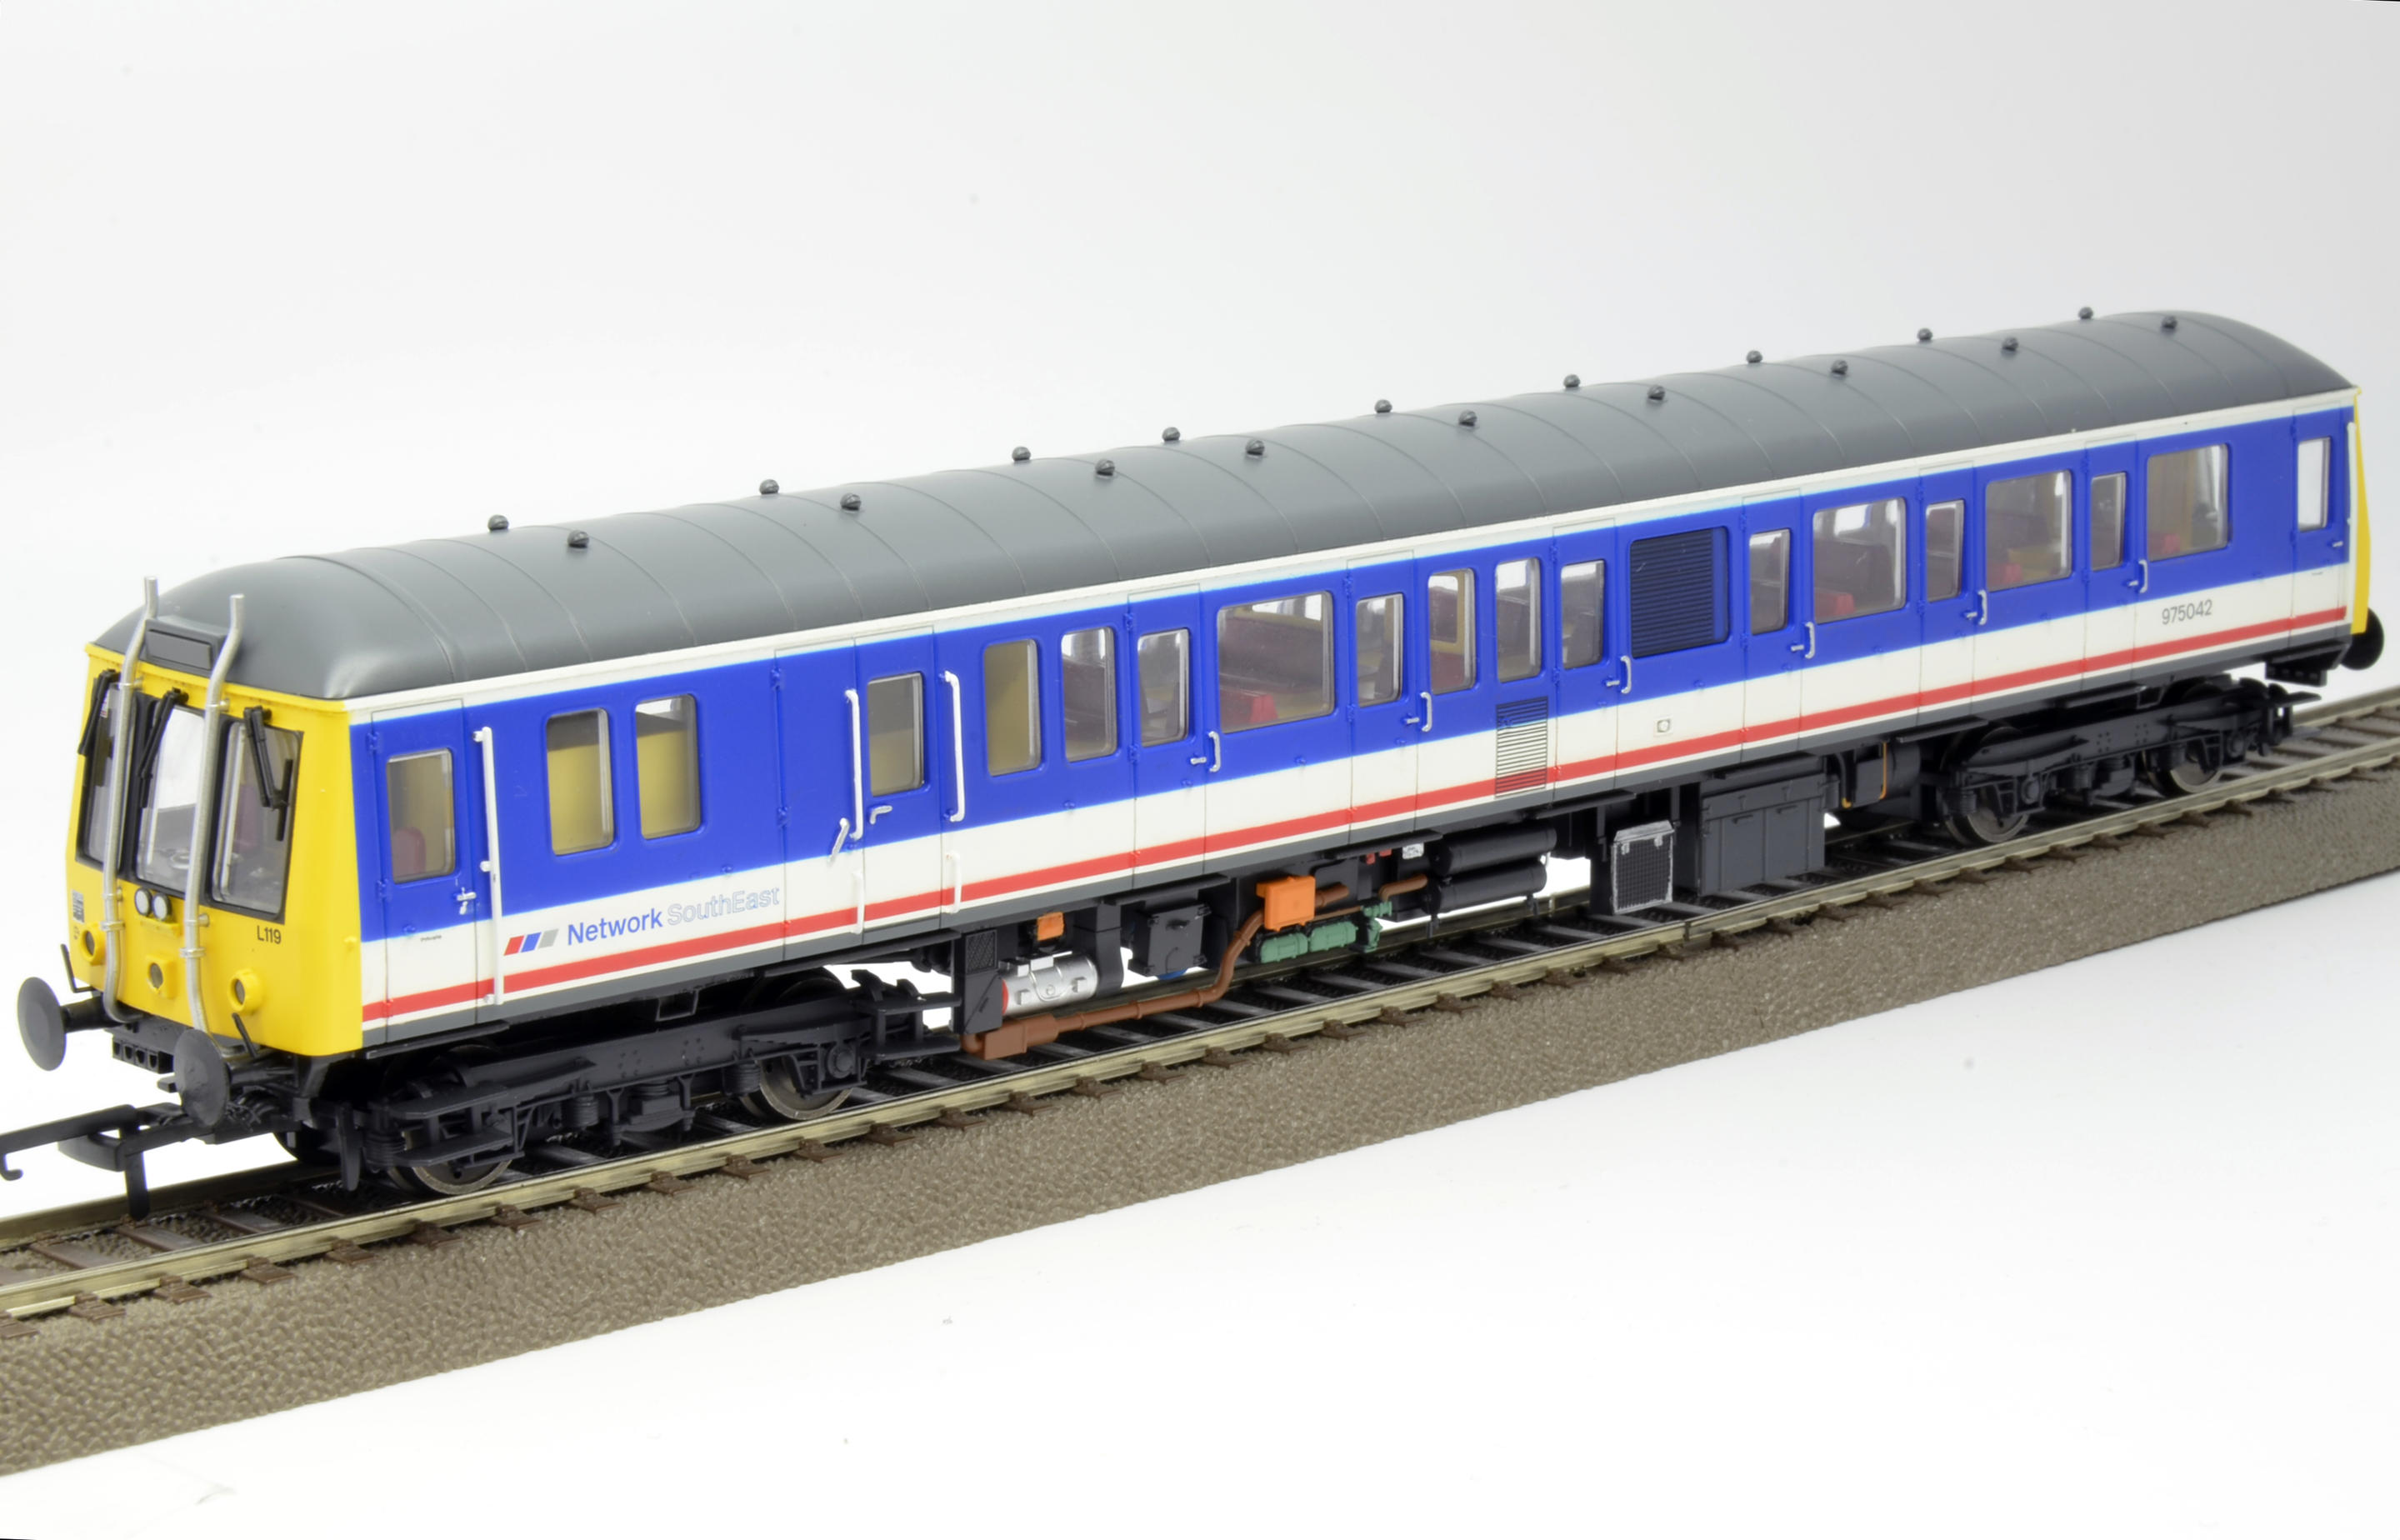 Dapol 4D-015-006 Network Southeast Route learning car